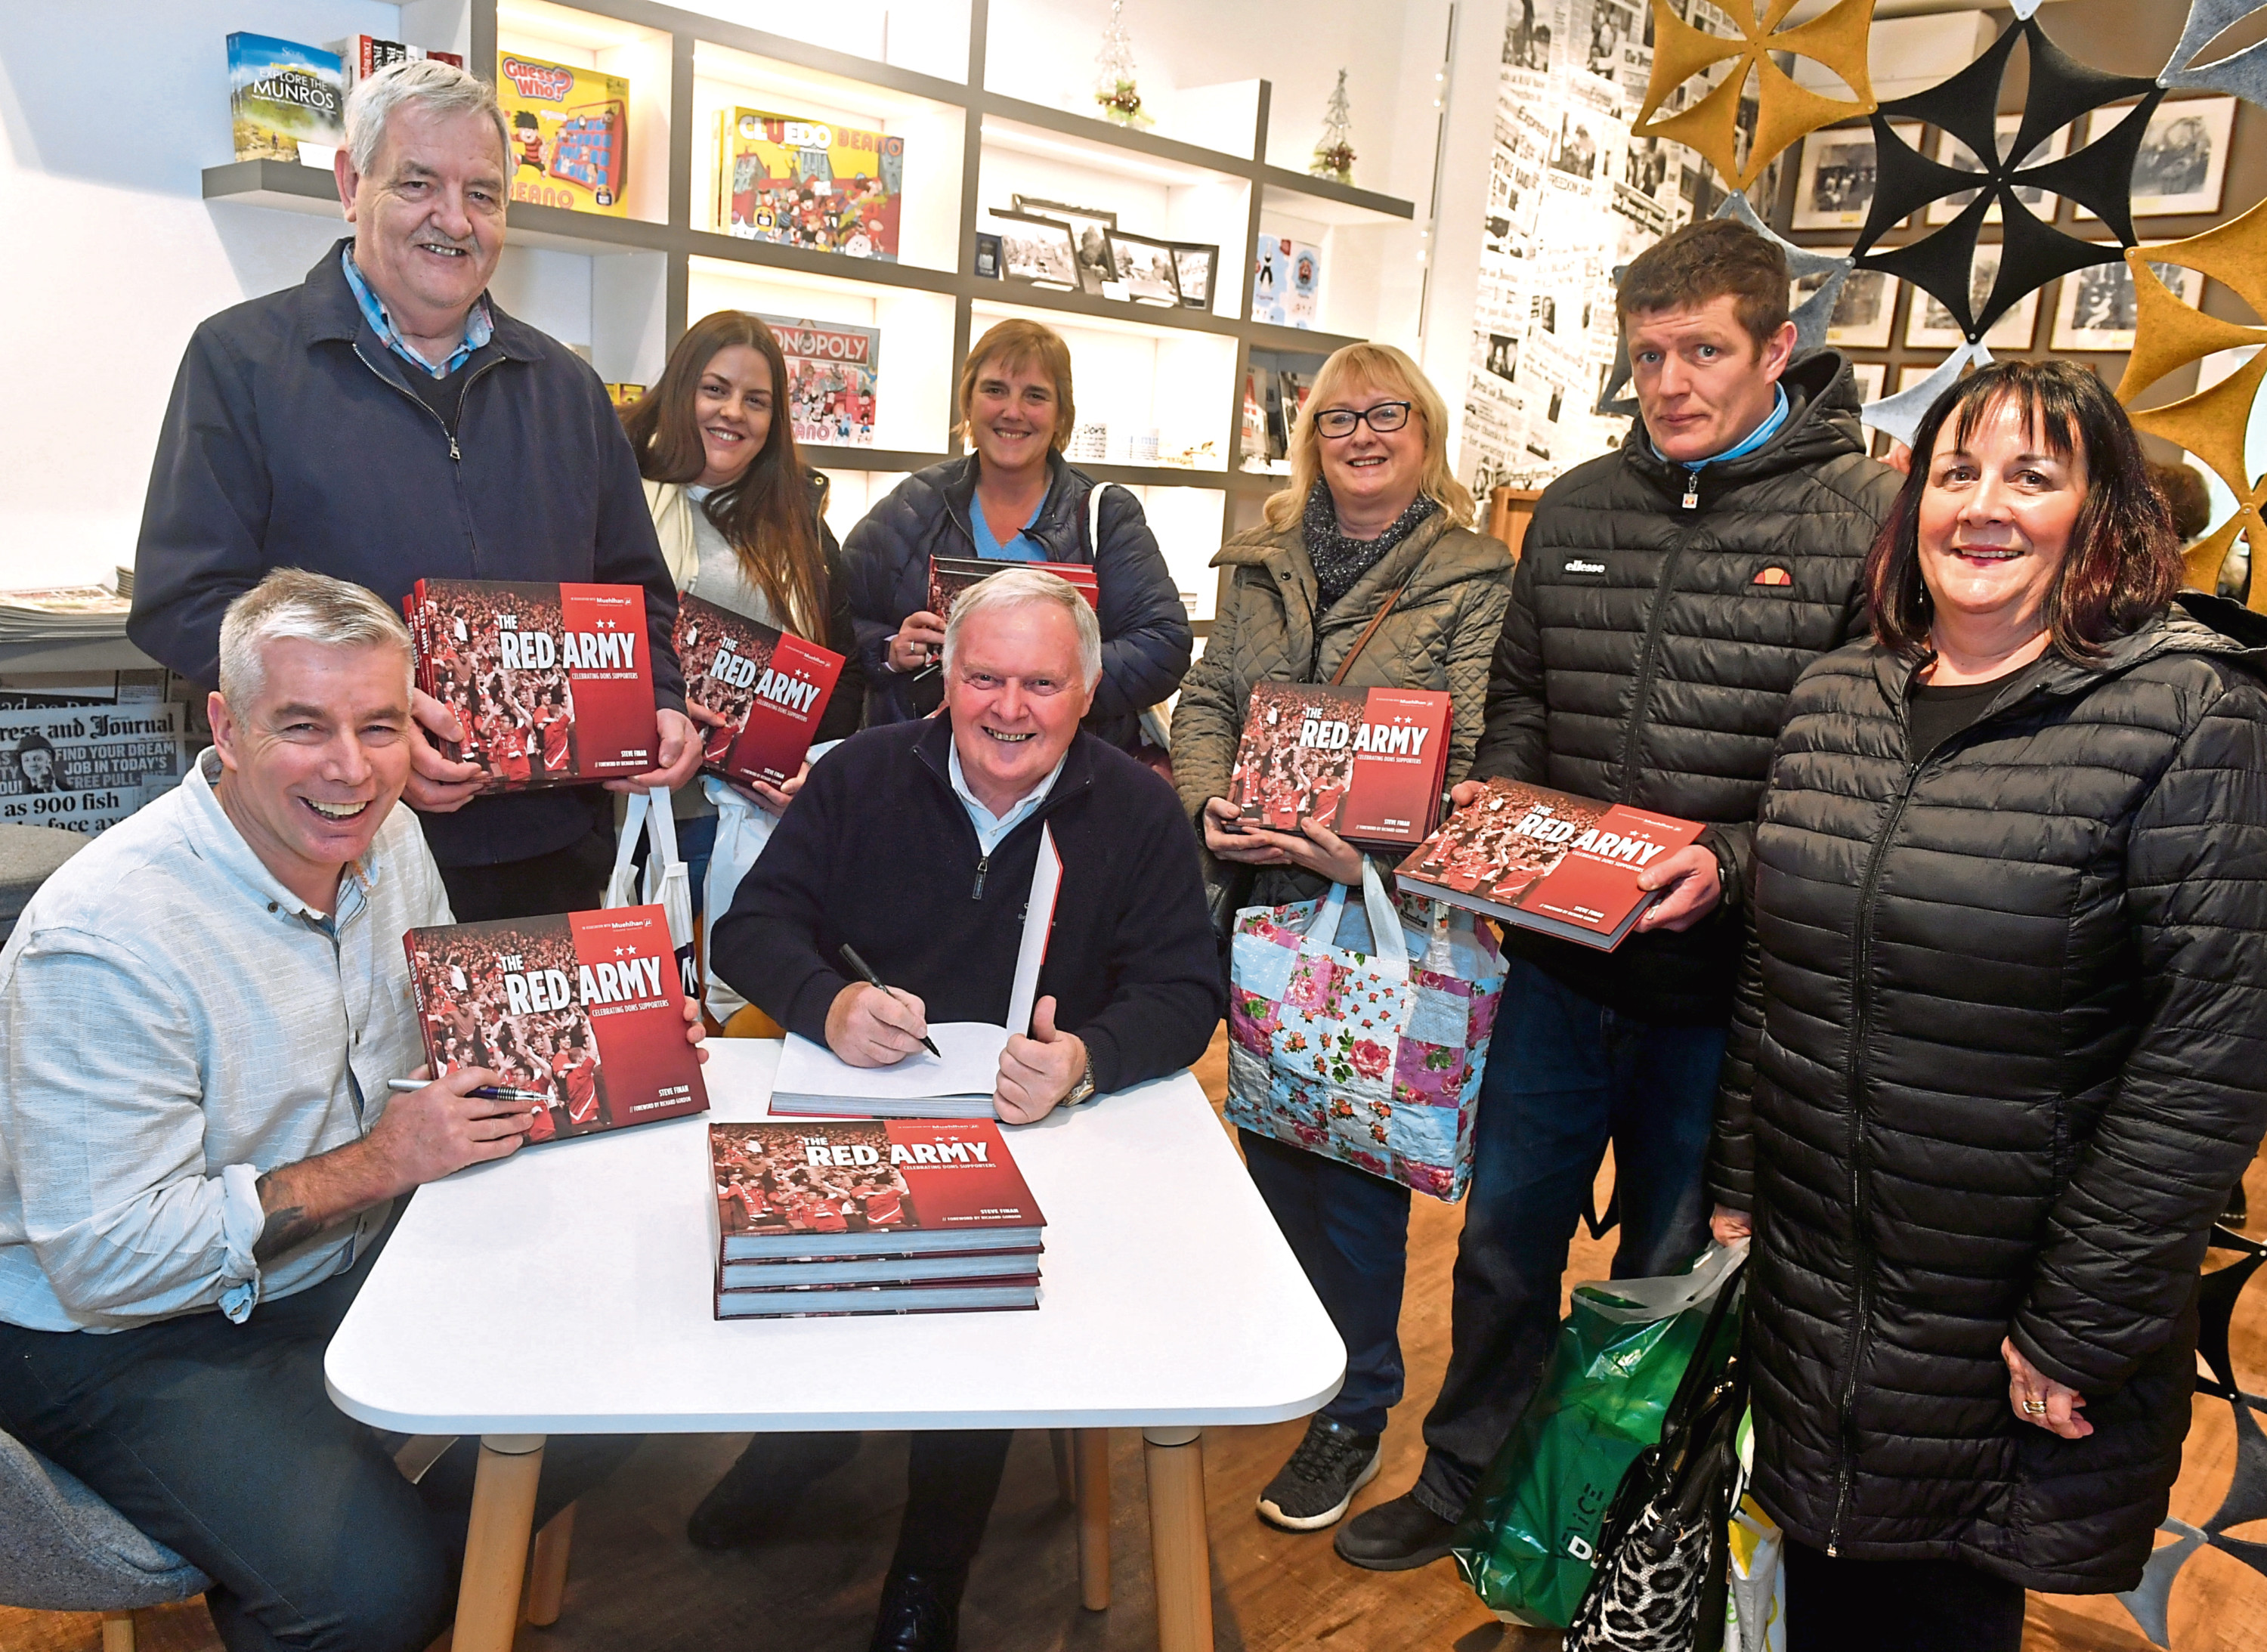 CR0017447 Picture from The Red Army book signing at the Journals shop, featuring Evening Express columnist Joe Harper and author Steve Finan.  Steve and Joe pictured with members of the public. Pic by...............Chris Sumner Taken...............11/12/19